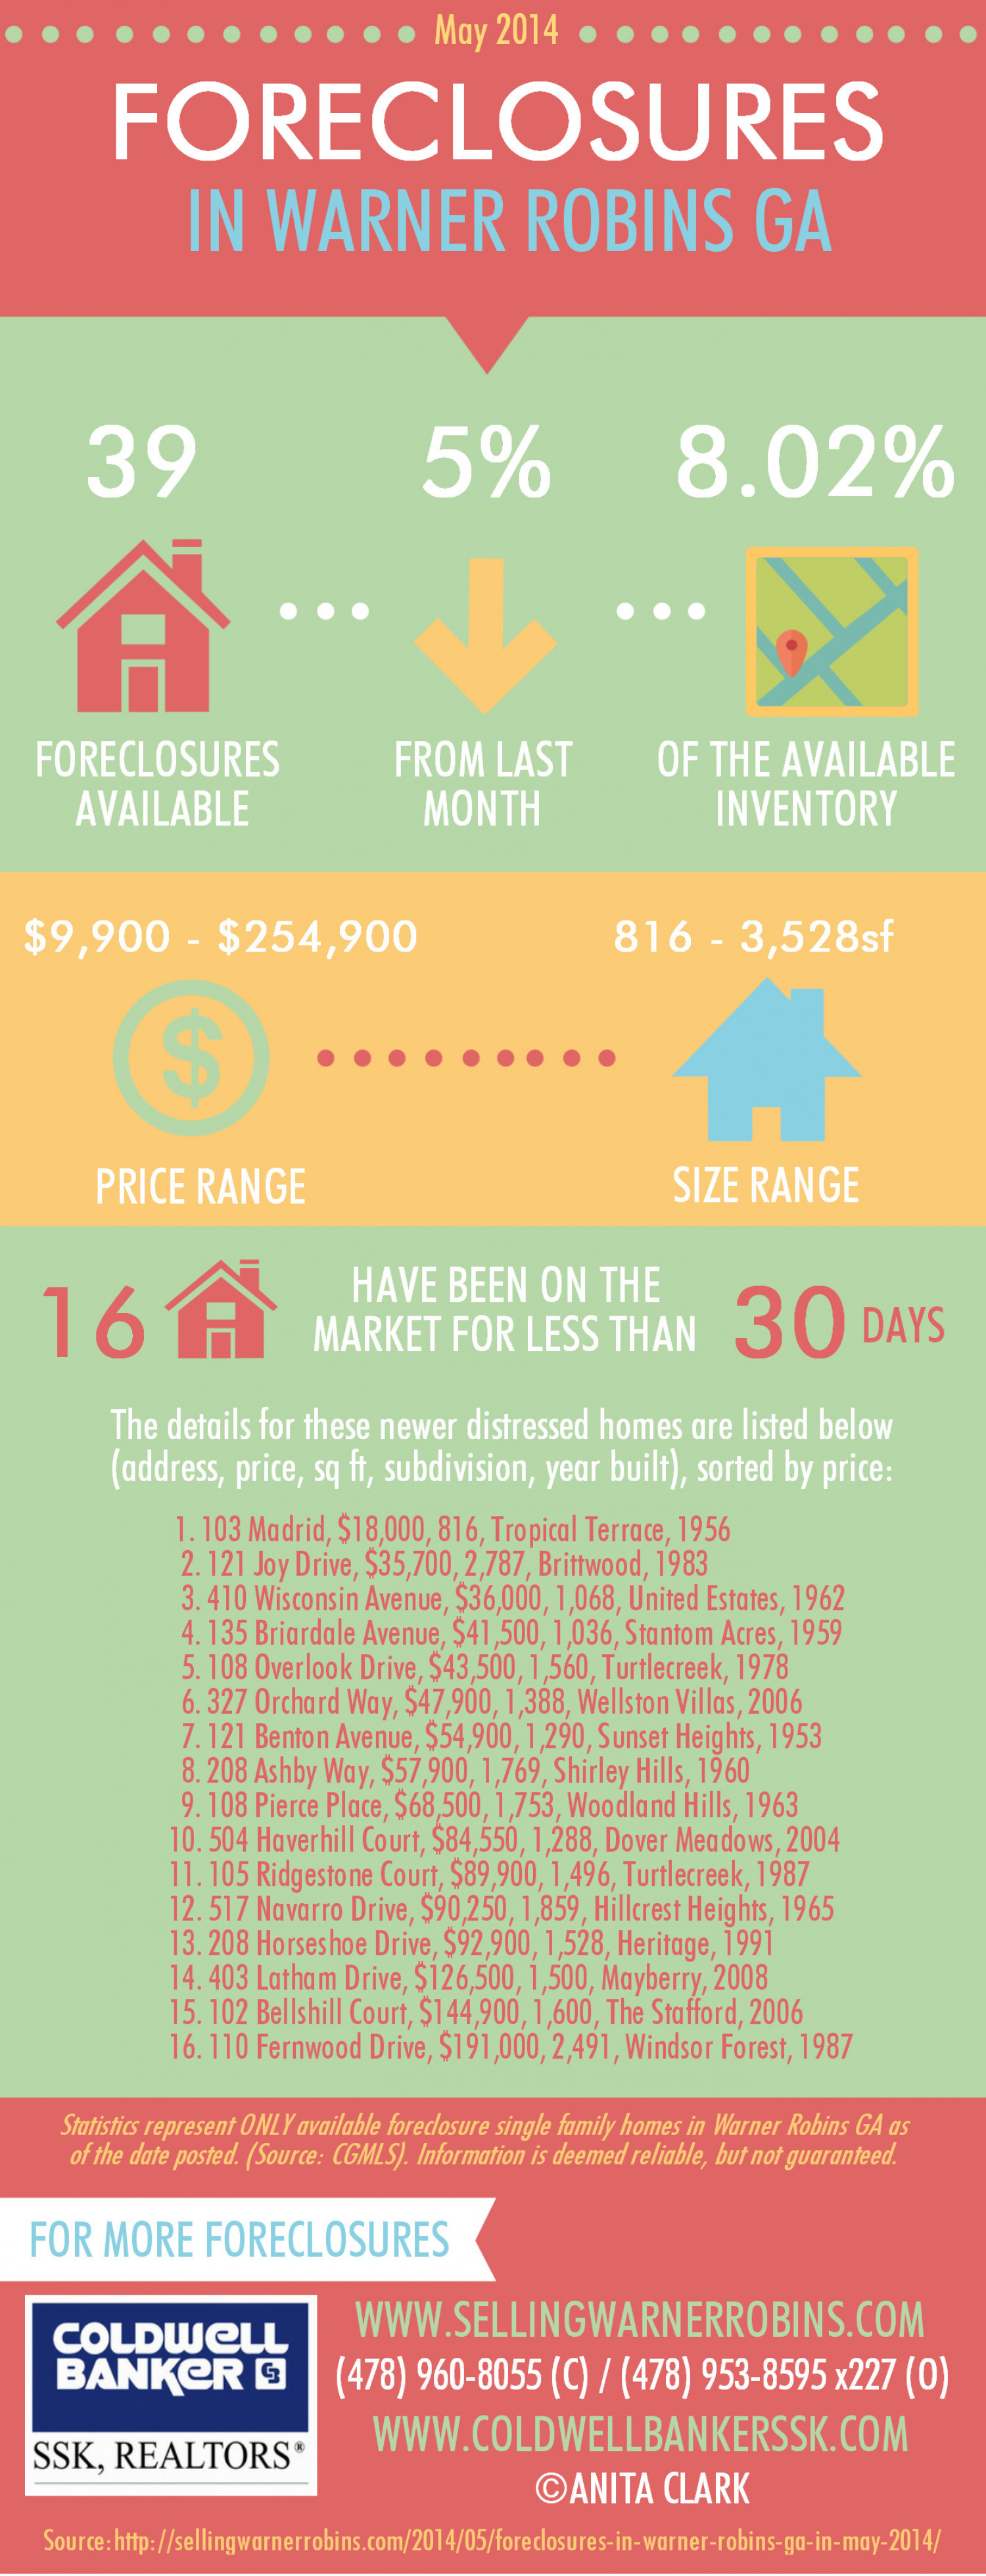 Foreclosures in Warner Robins GA for May 2014 Infographic